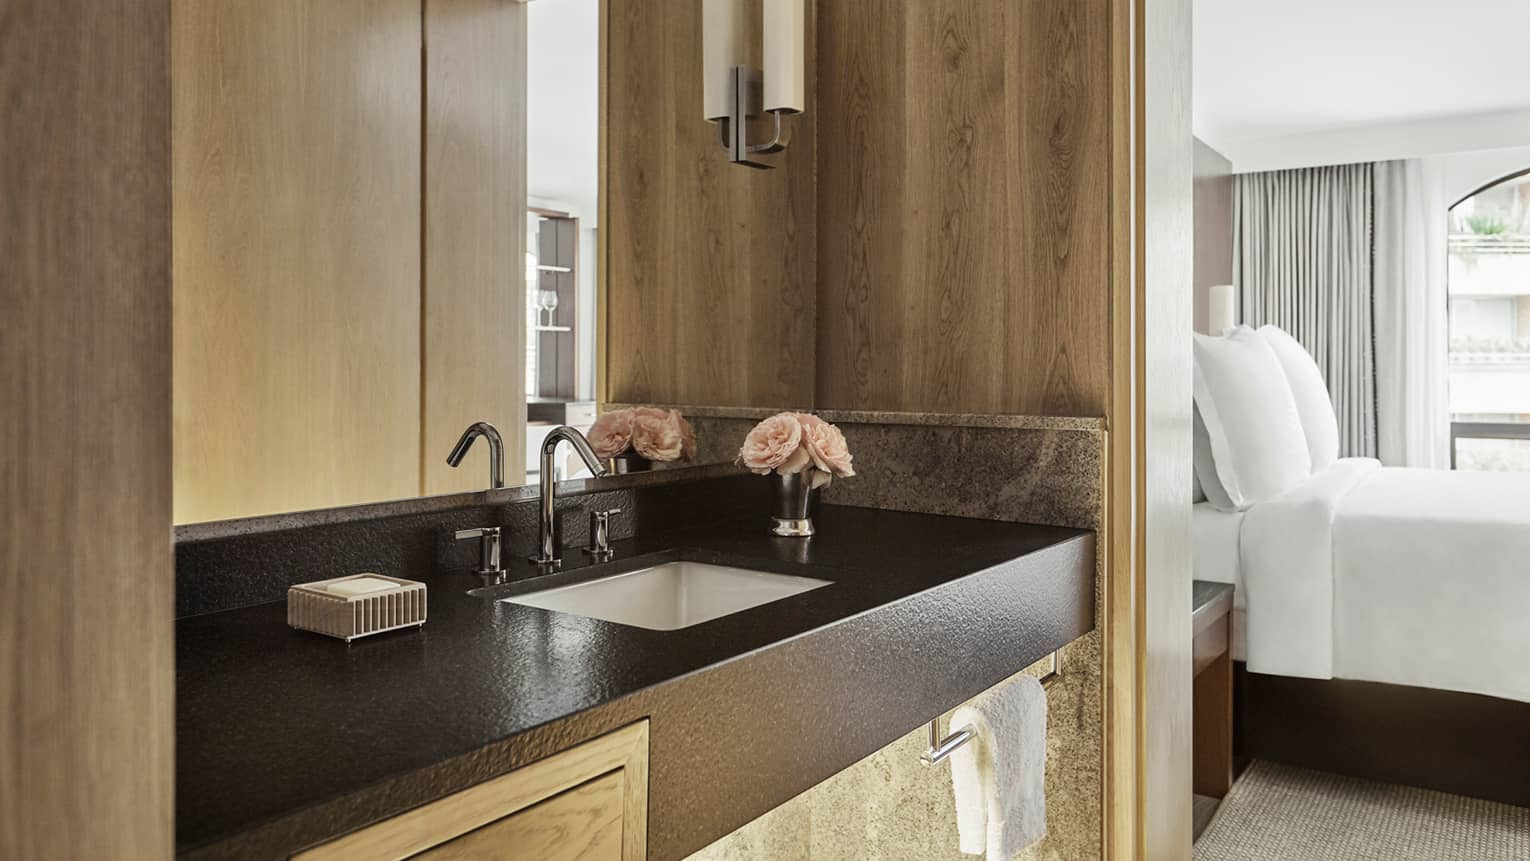 Close-up of bathroom vanity with black counter, sink, wood walls, bedroom visible to side